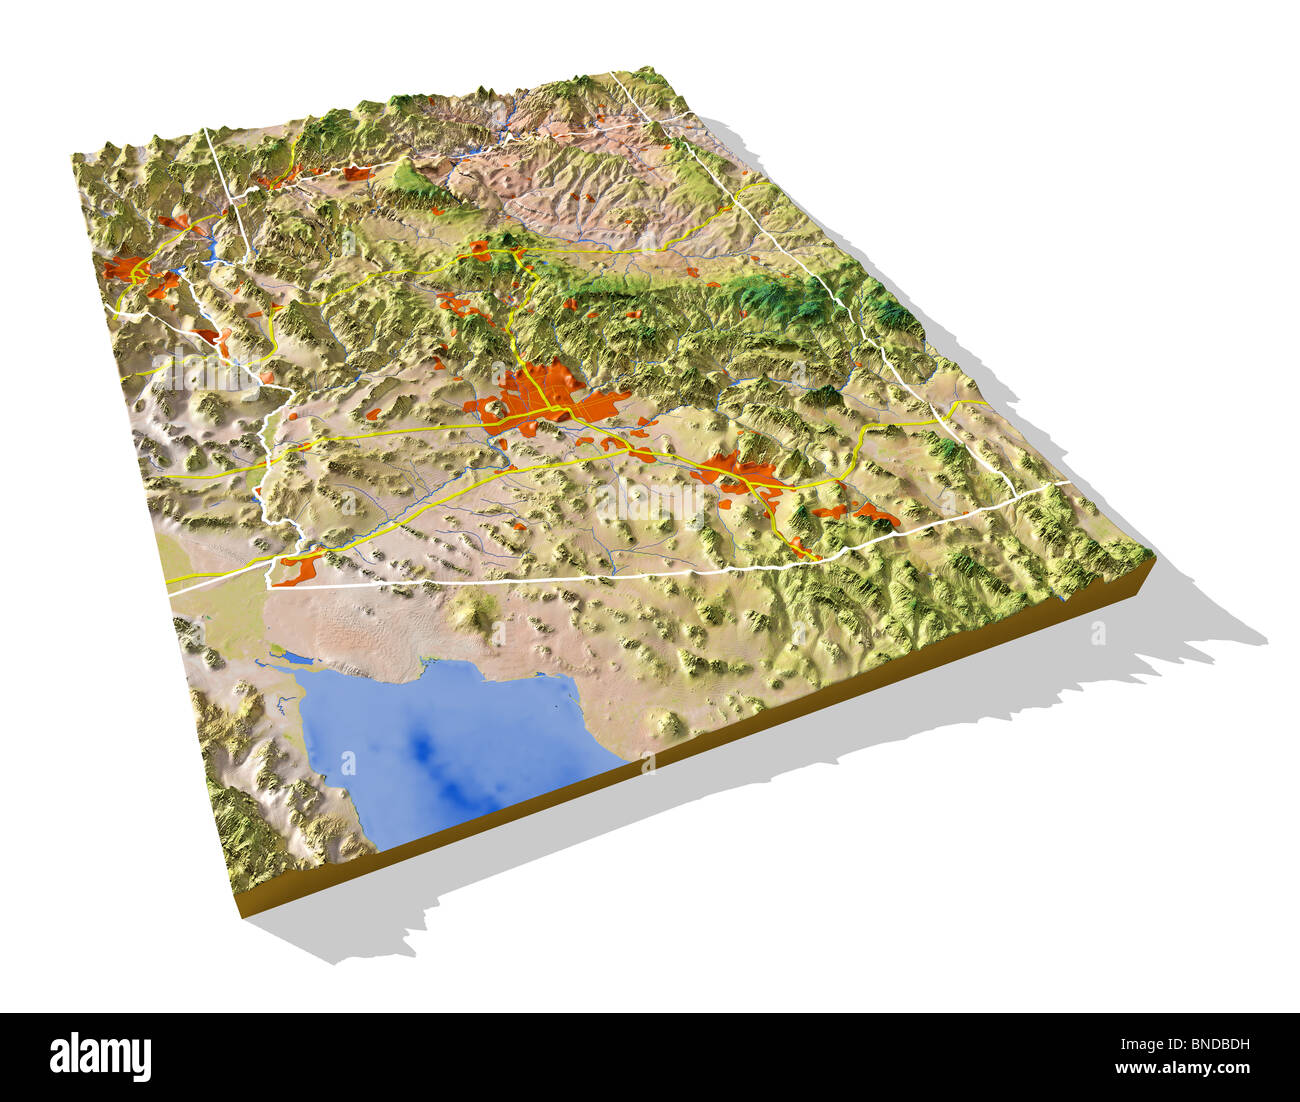 3d Map Of Arizona.Arizona 3d Relief Map With Urban Areas Interstate Highways And